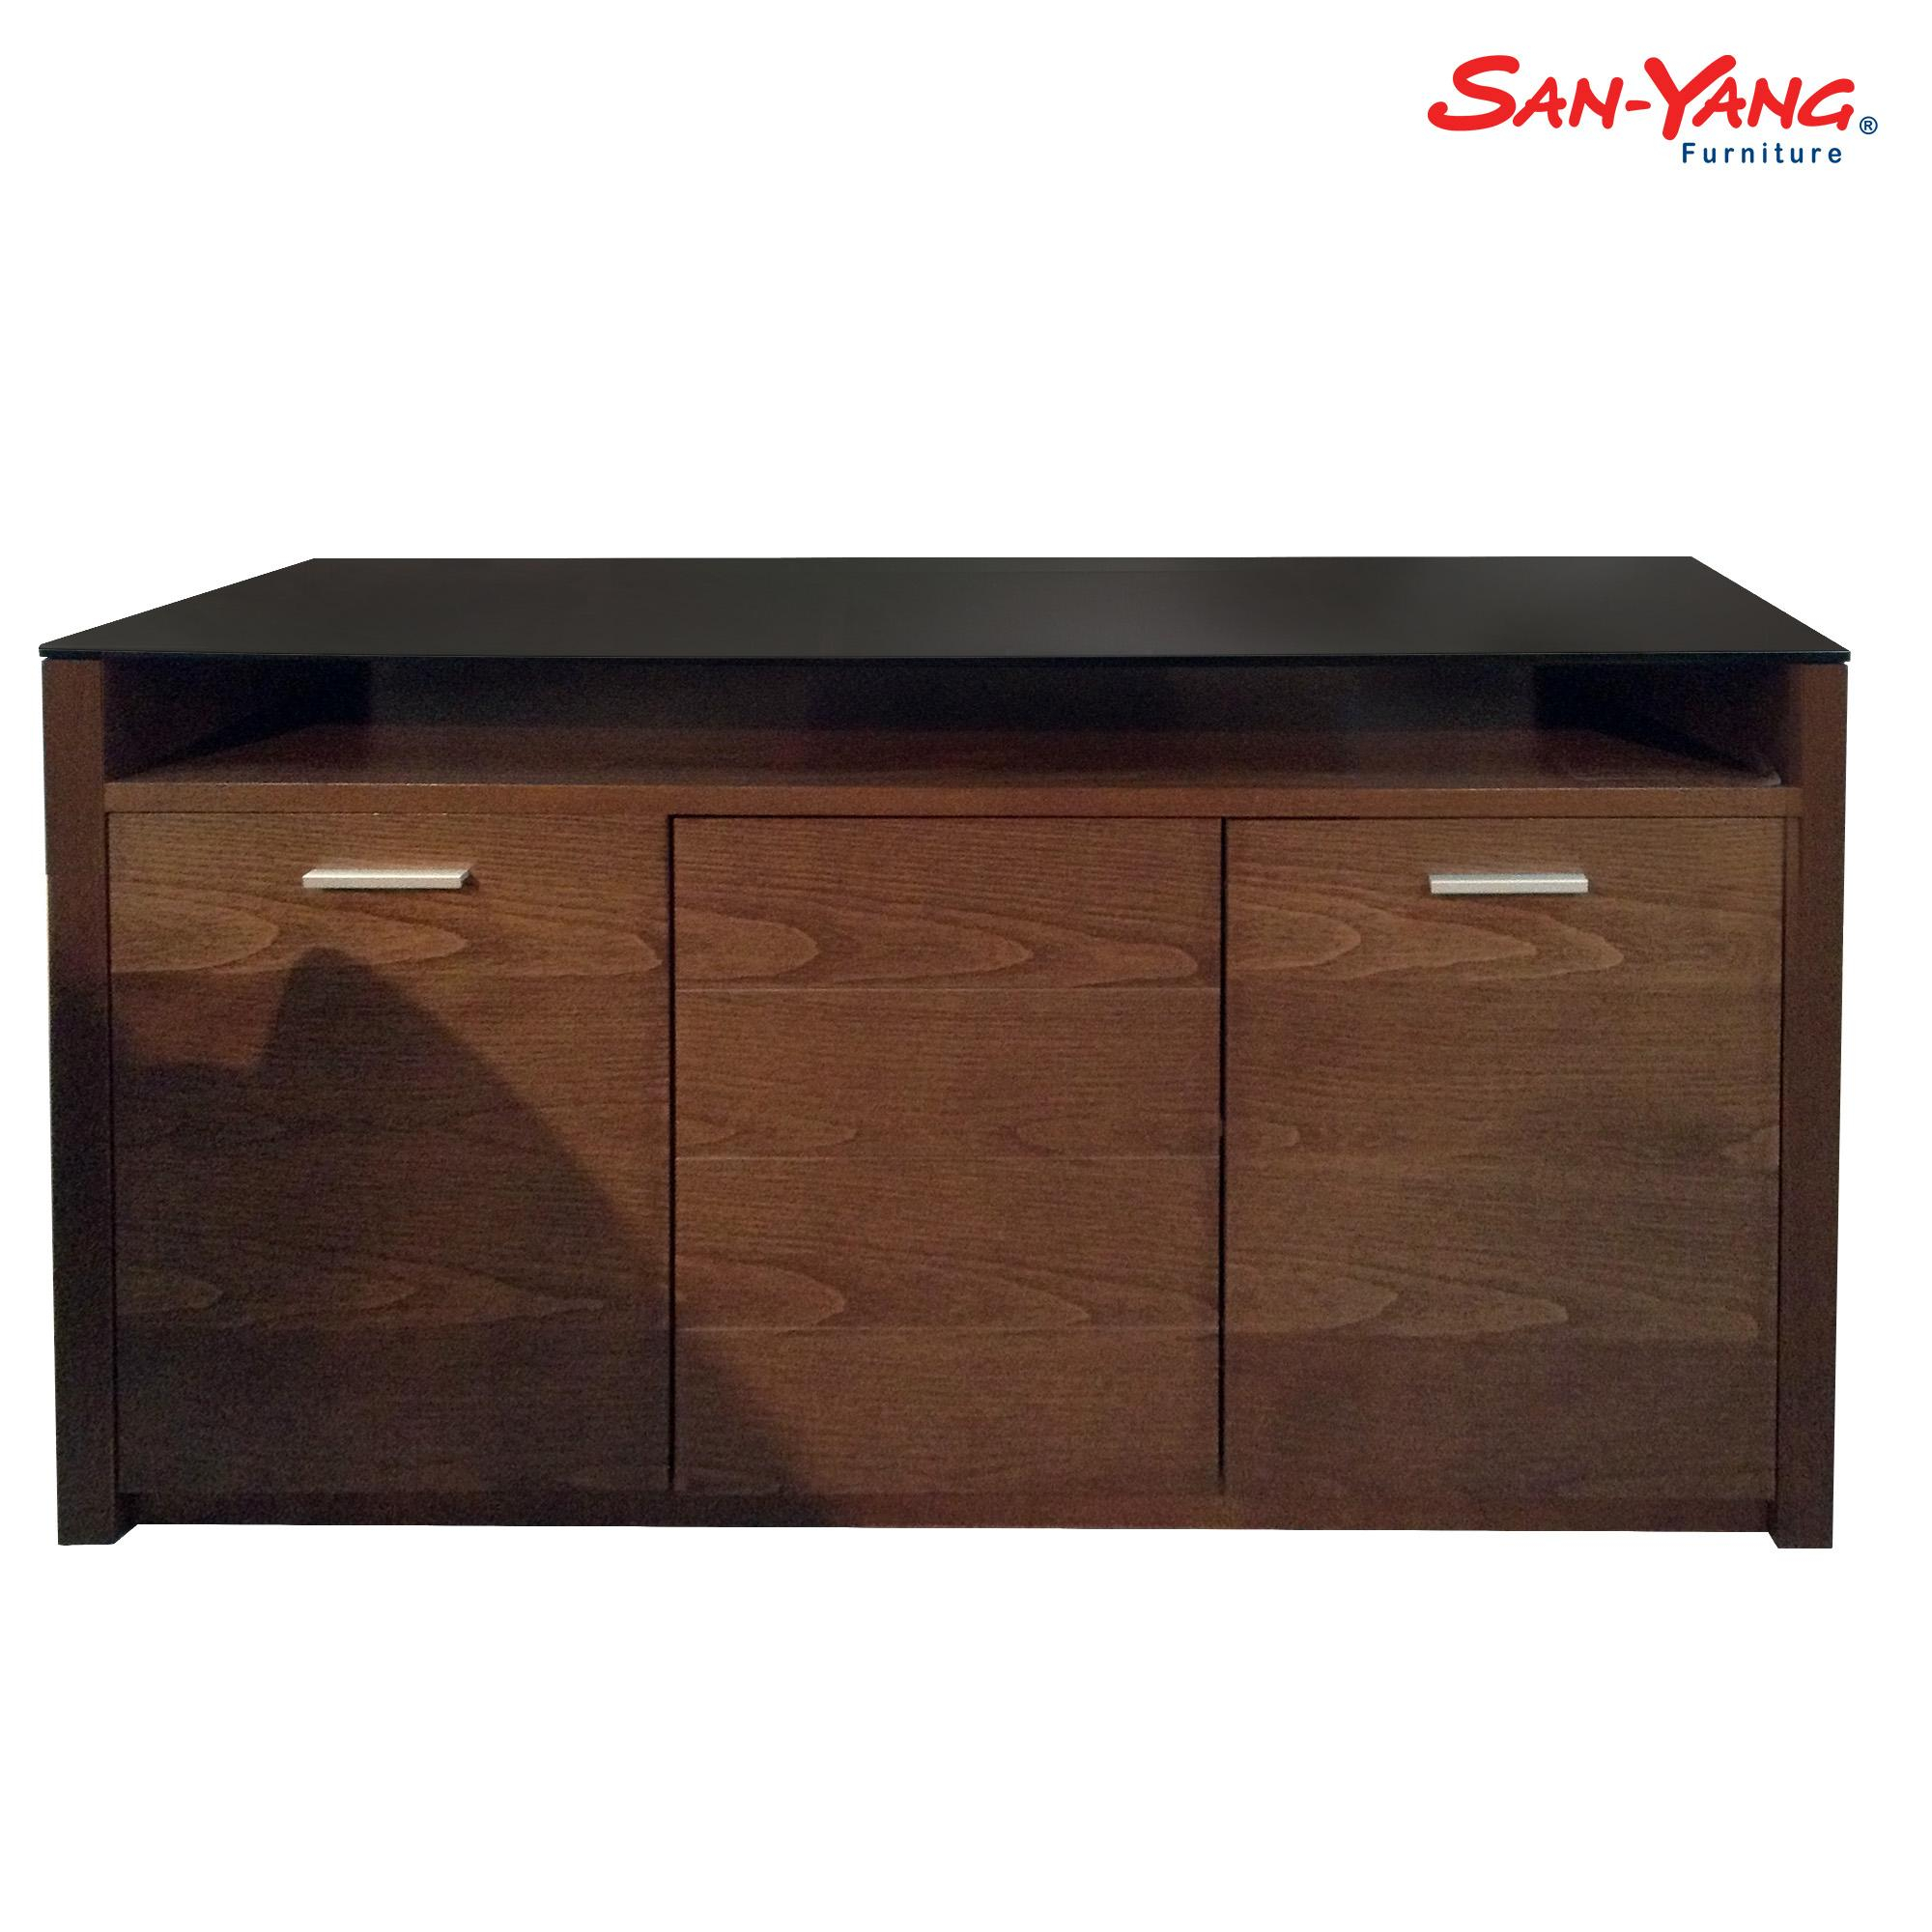 San Yang Buffet Cabinet Fbc8336 With Chalus Sideboards (View 24 of 30)